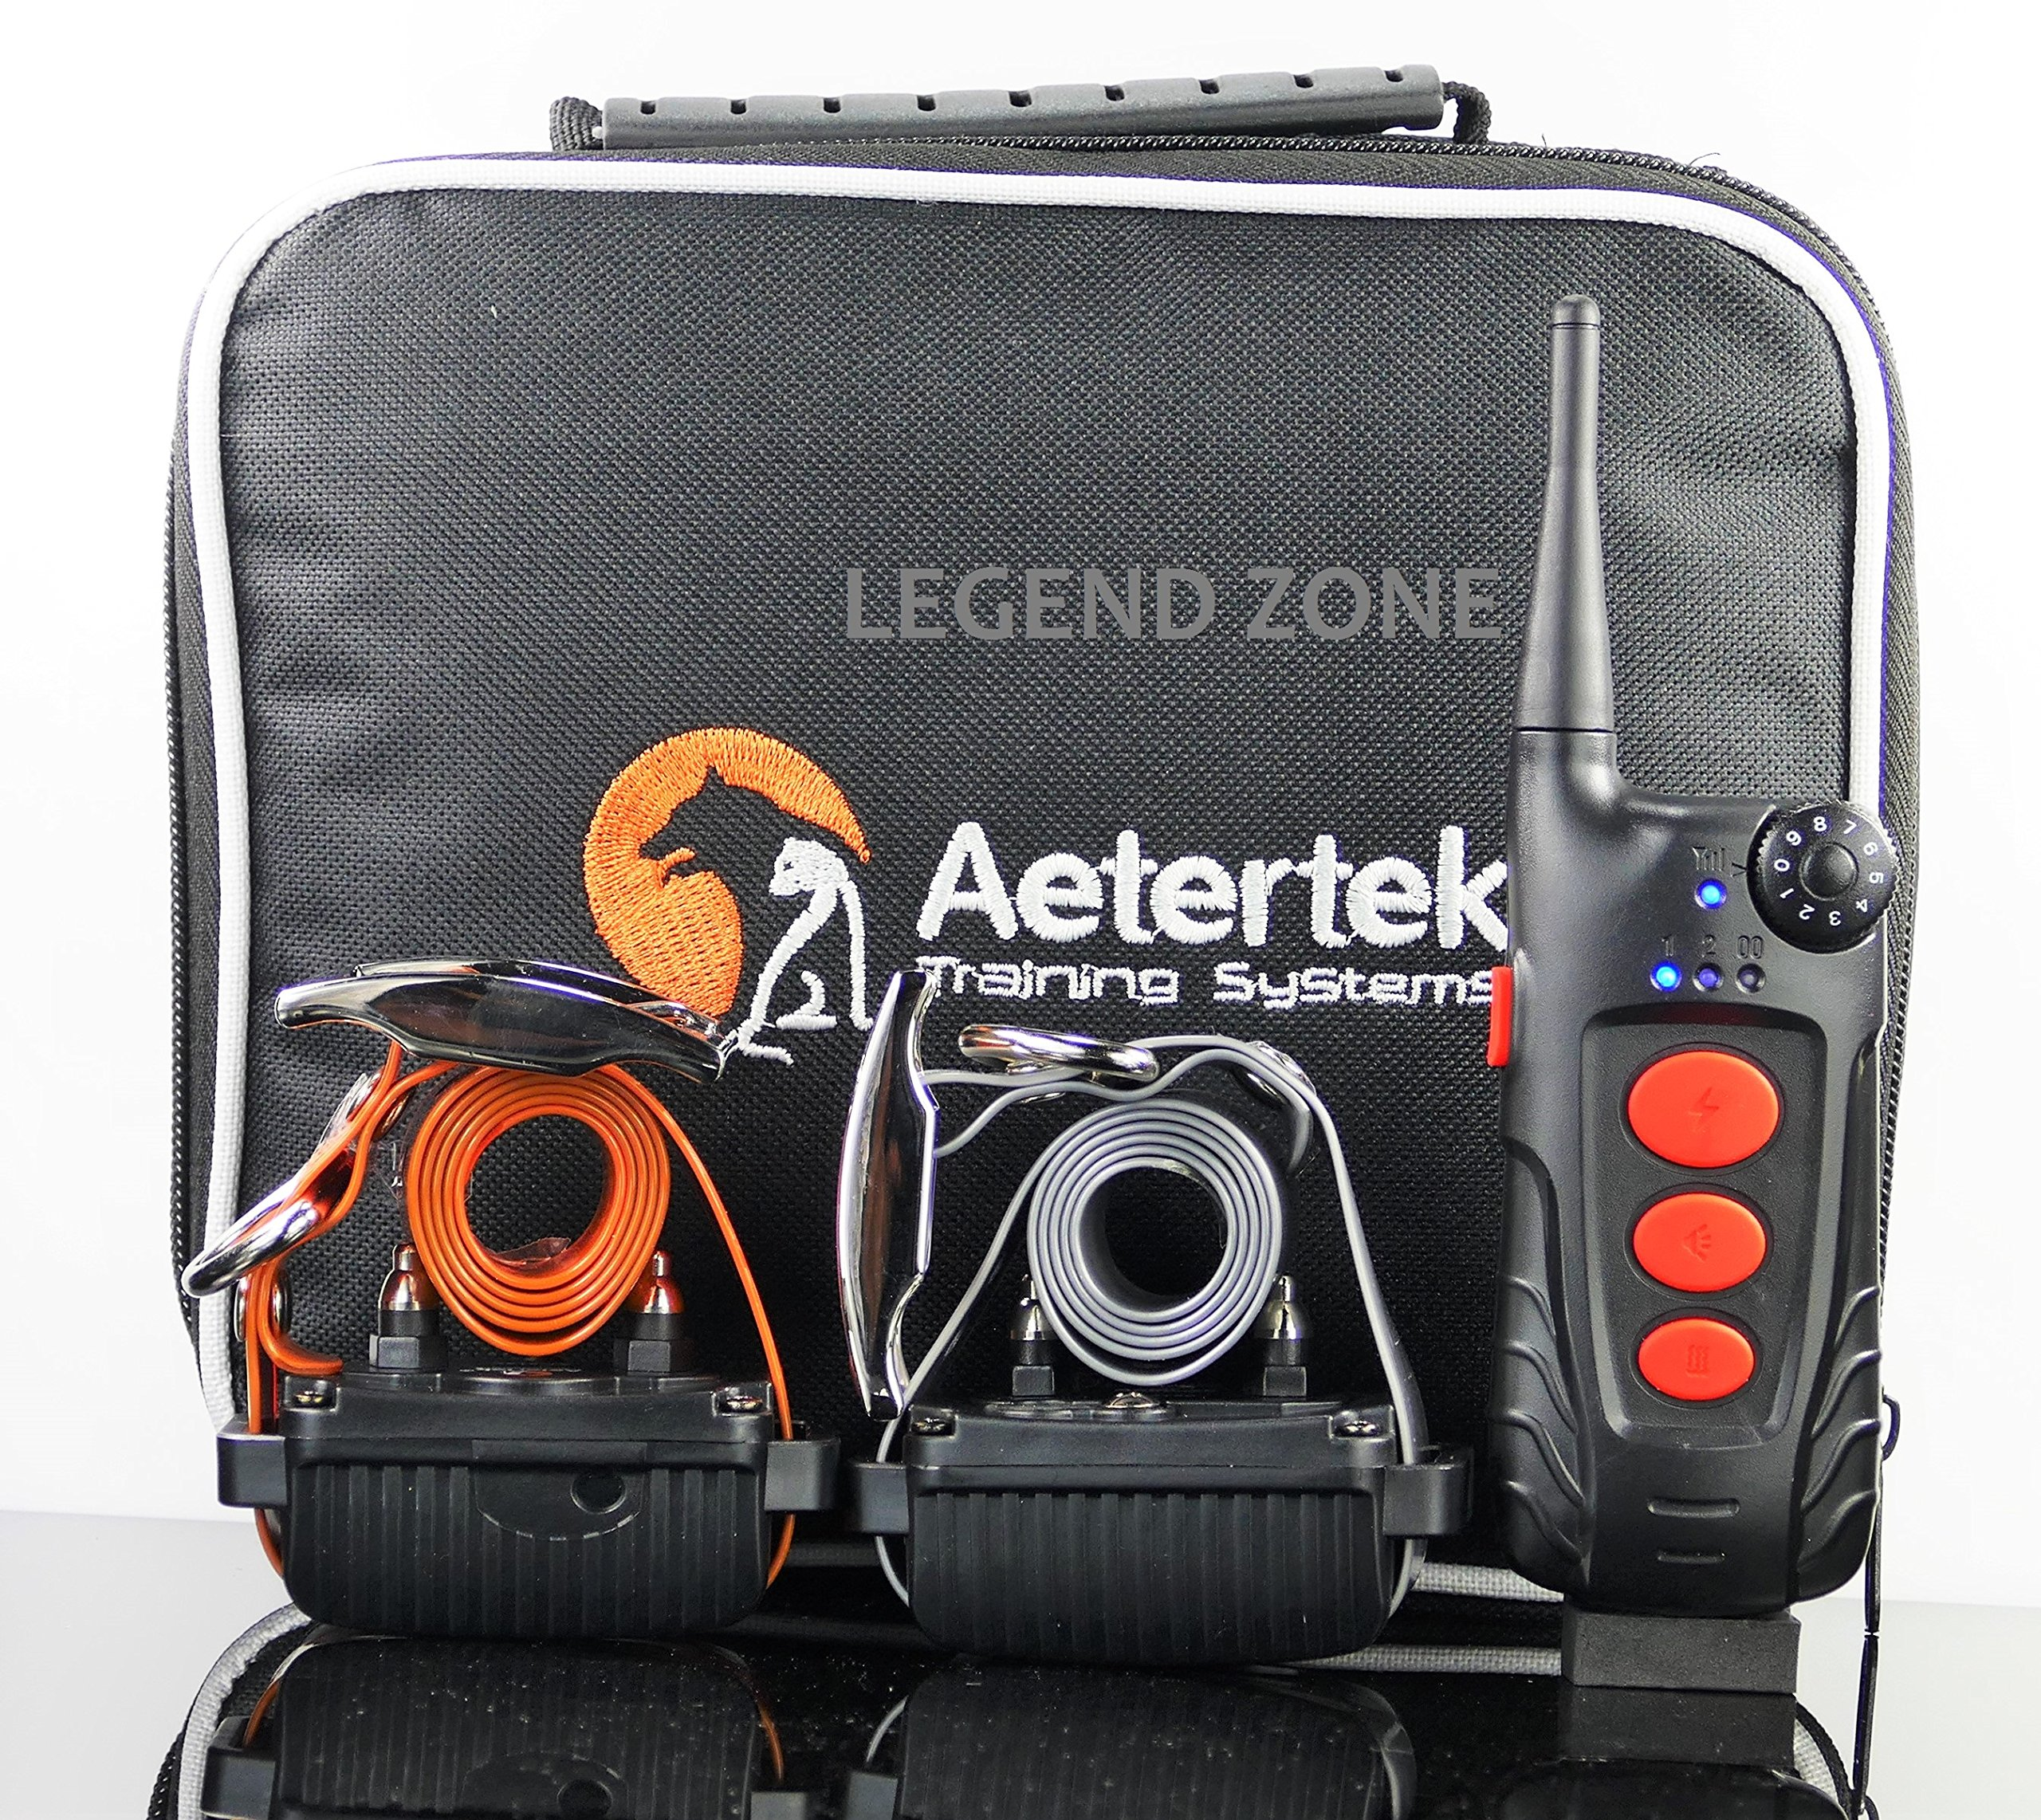 Aetertek 600 YARD REMOTE RANGE DOG TRAINING BARK CONTROL SHOCK TRAINER AUTO ANTI BARK COLLAR FOR ALL DOGS by Aetertek